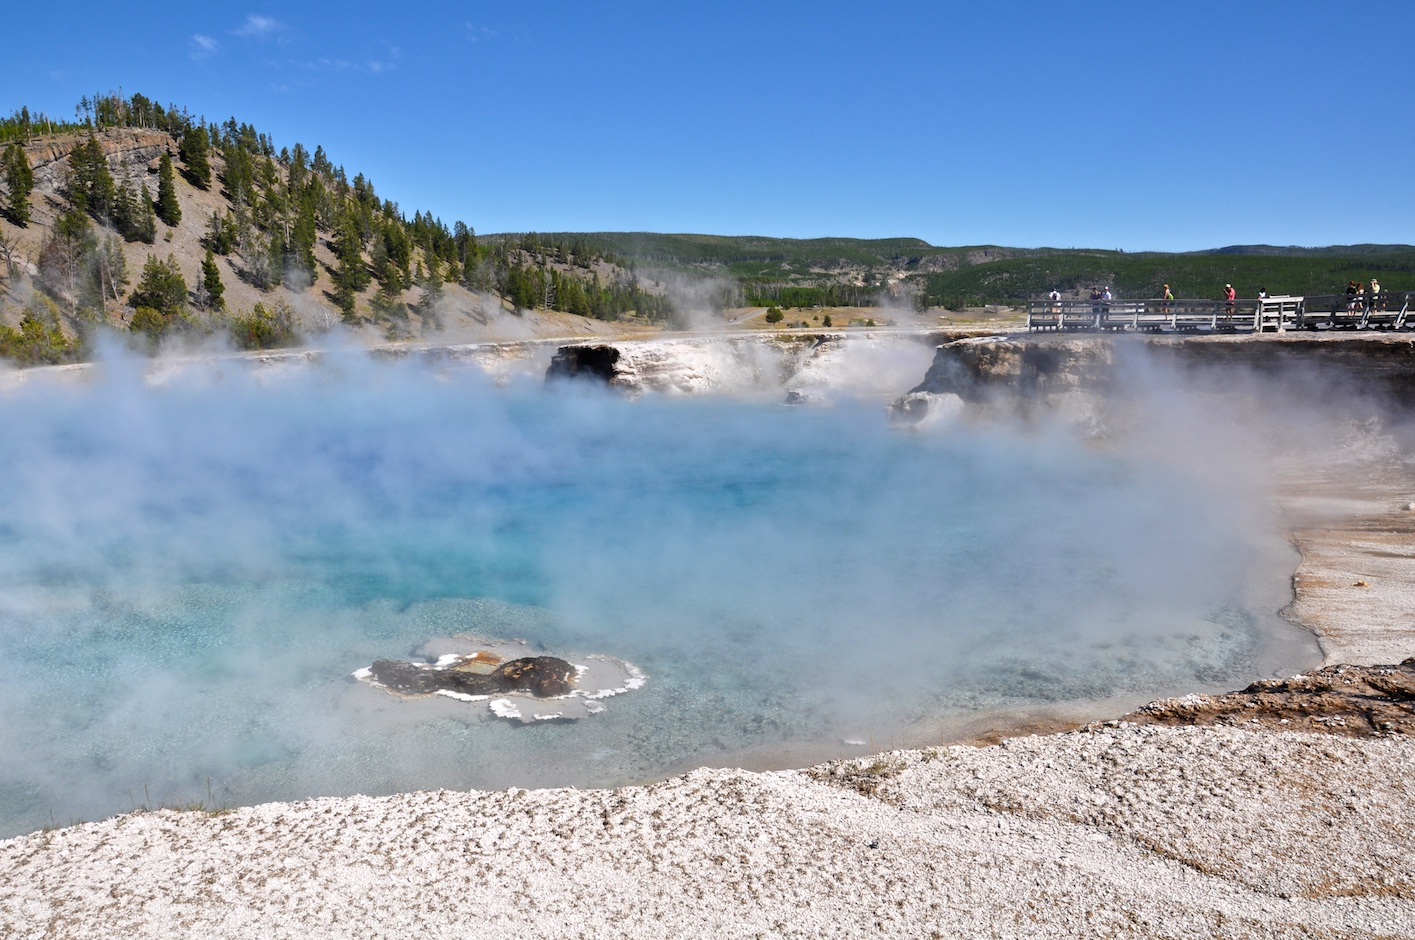 Excelsior Geyser Crater - Yellowstone National Park